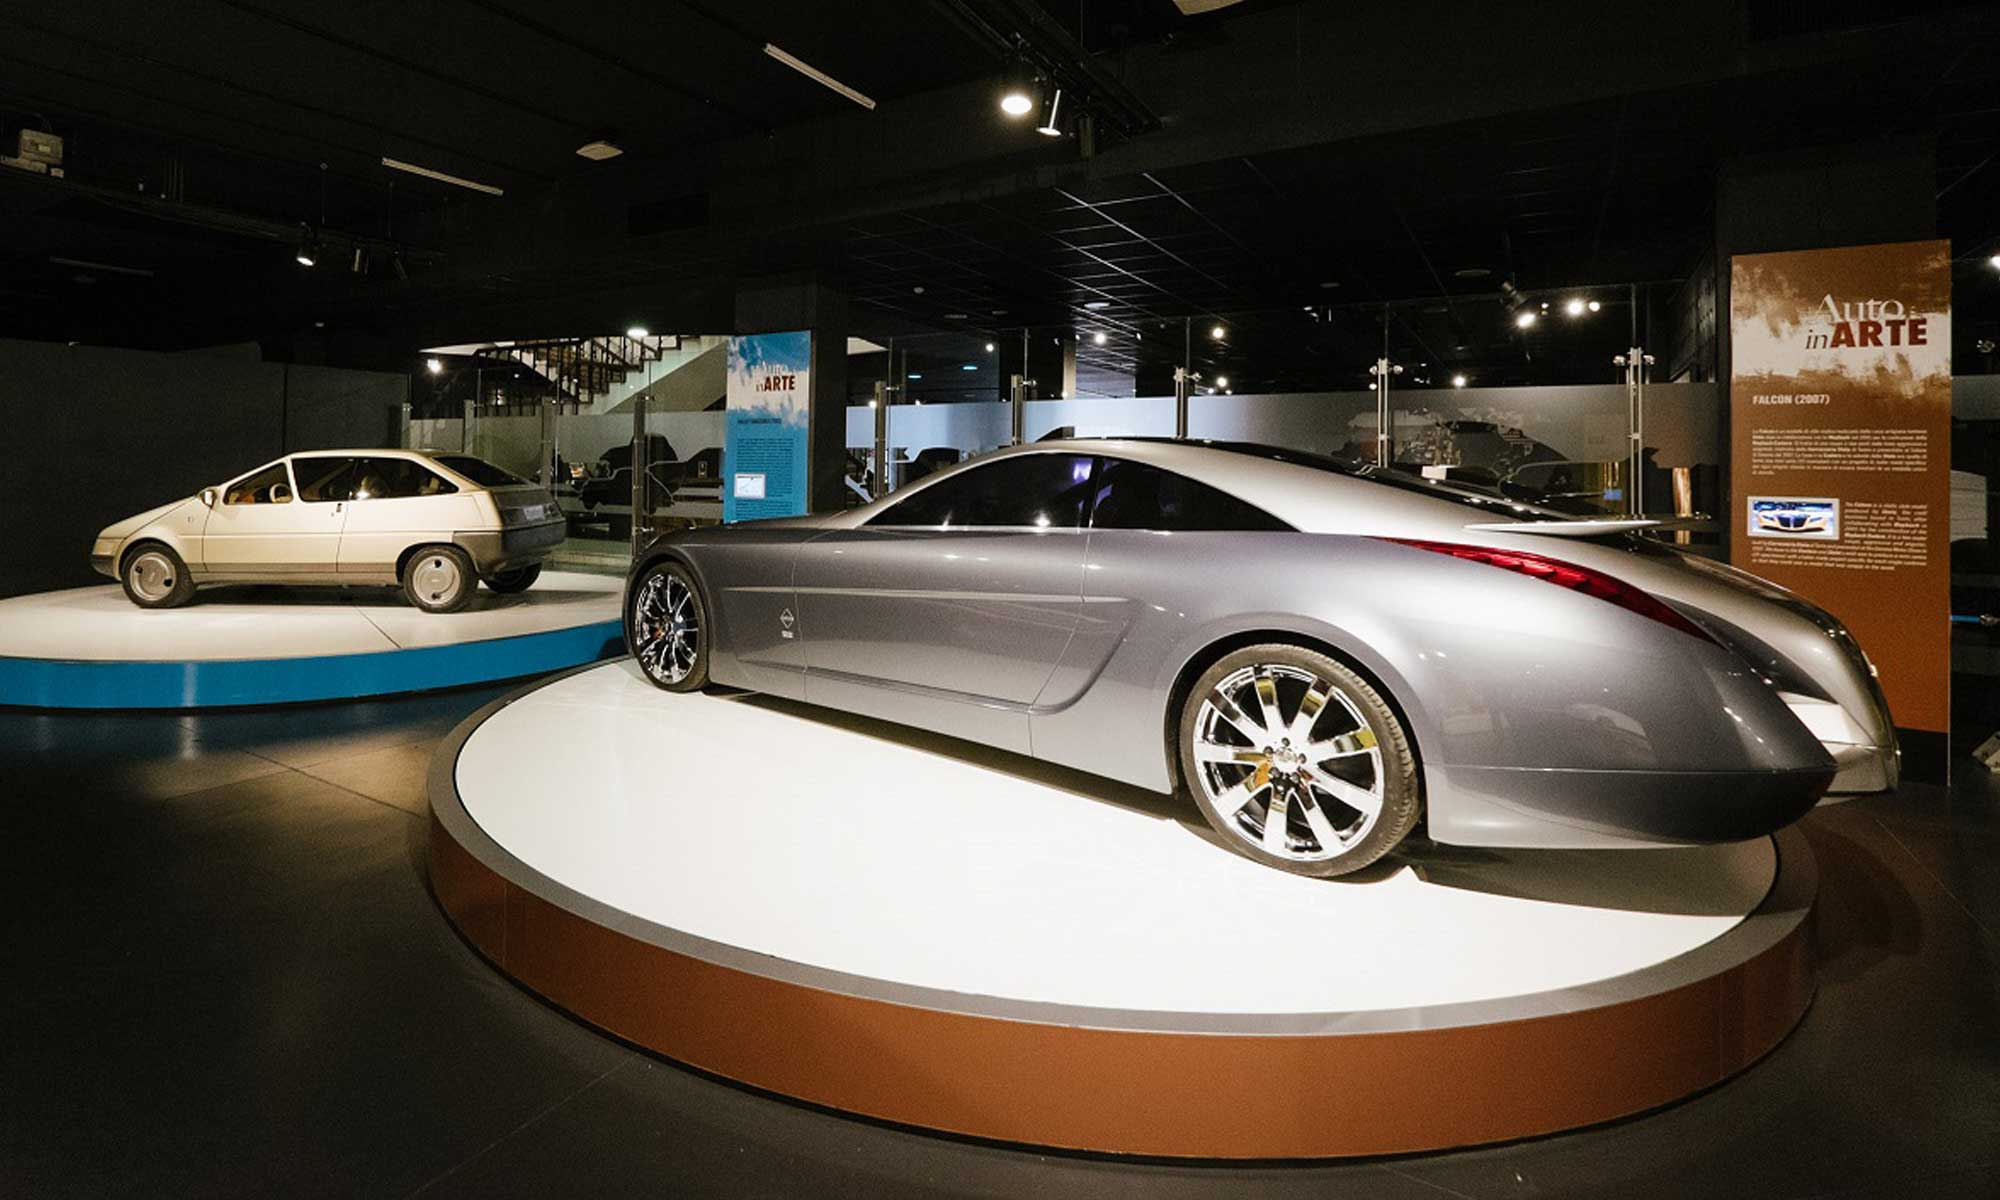 Museo dell Automobile Italy